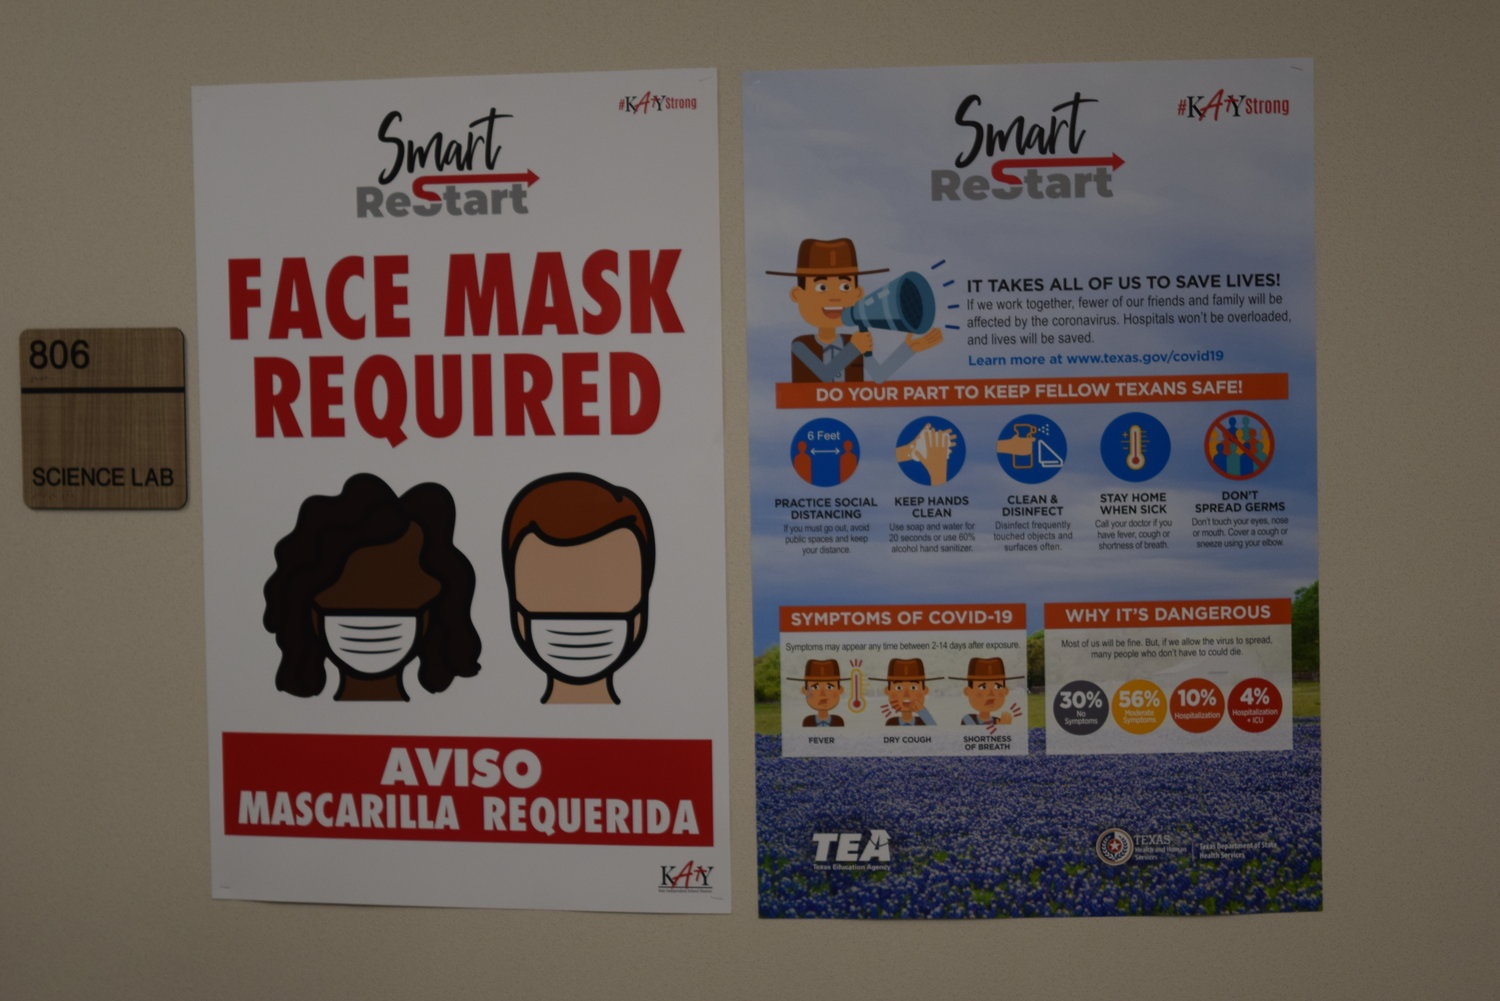 Signage throughout the halls at McElwain reminding students, staff and visitors to wear a mask and practice social distancing to mitigate the risks of spreading COVID-19. Students appeared more fascinated by the reporters covering the school opening than the masks which most seemed used to and comfortable with.